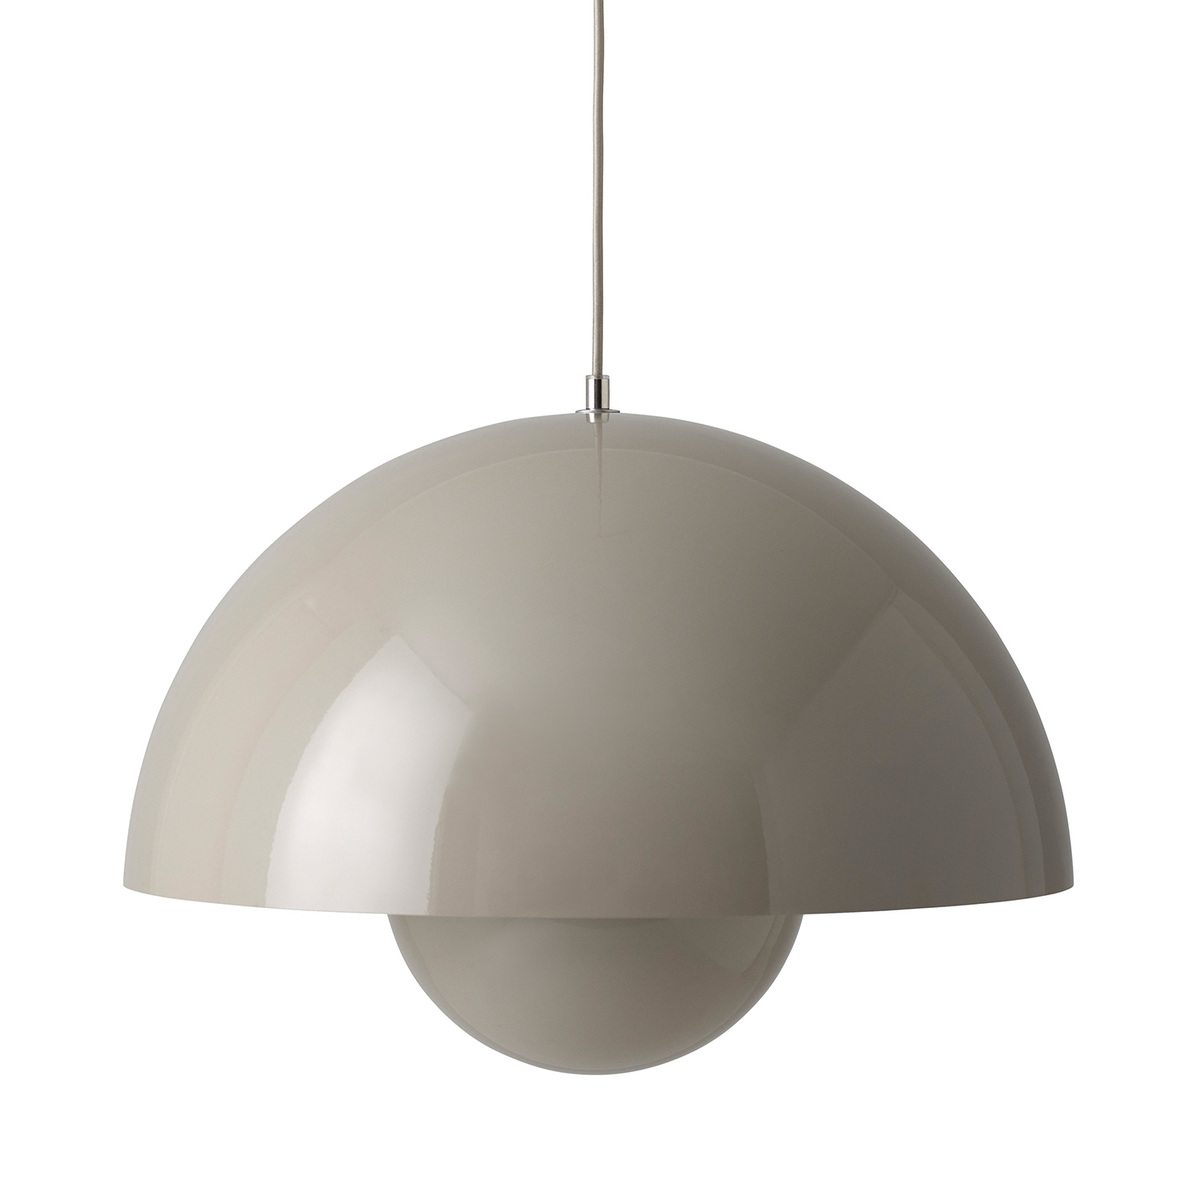 &Tradition Flowerpot VP2 pendant, grey beige from &Tradition